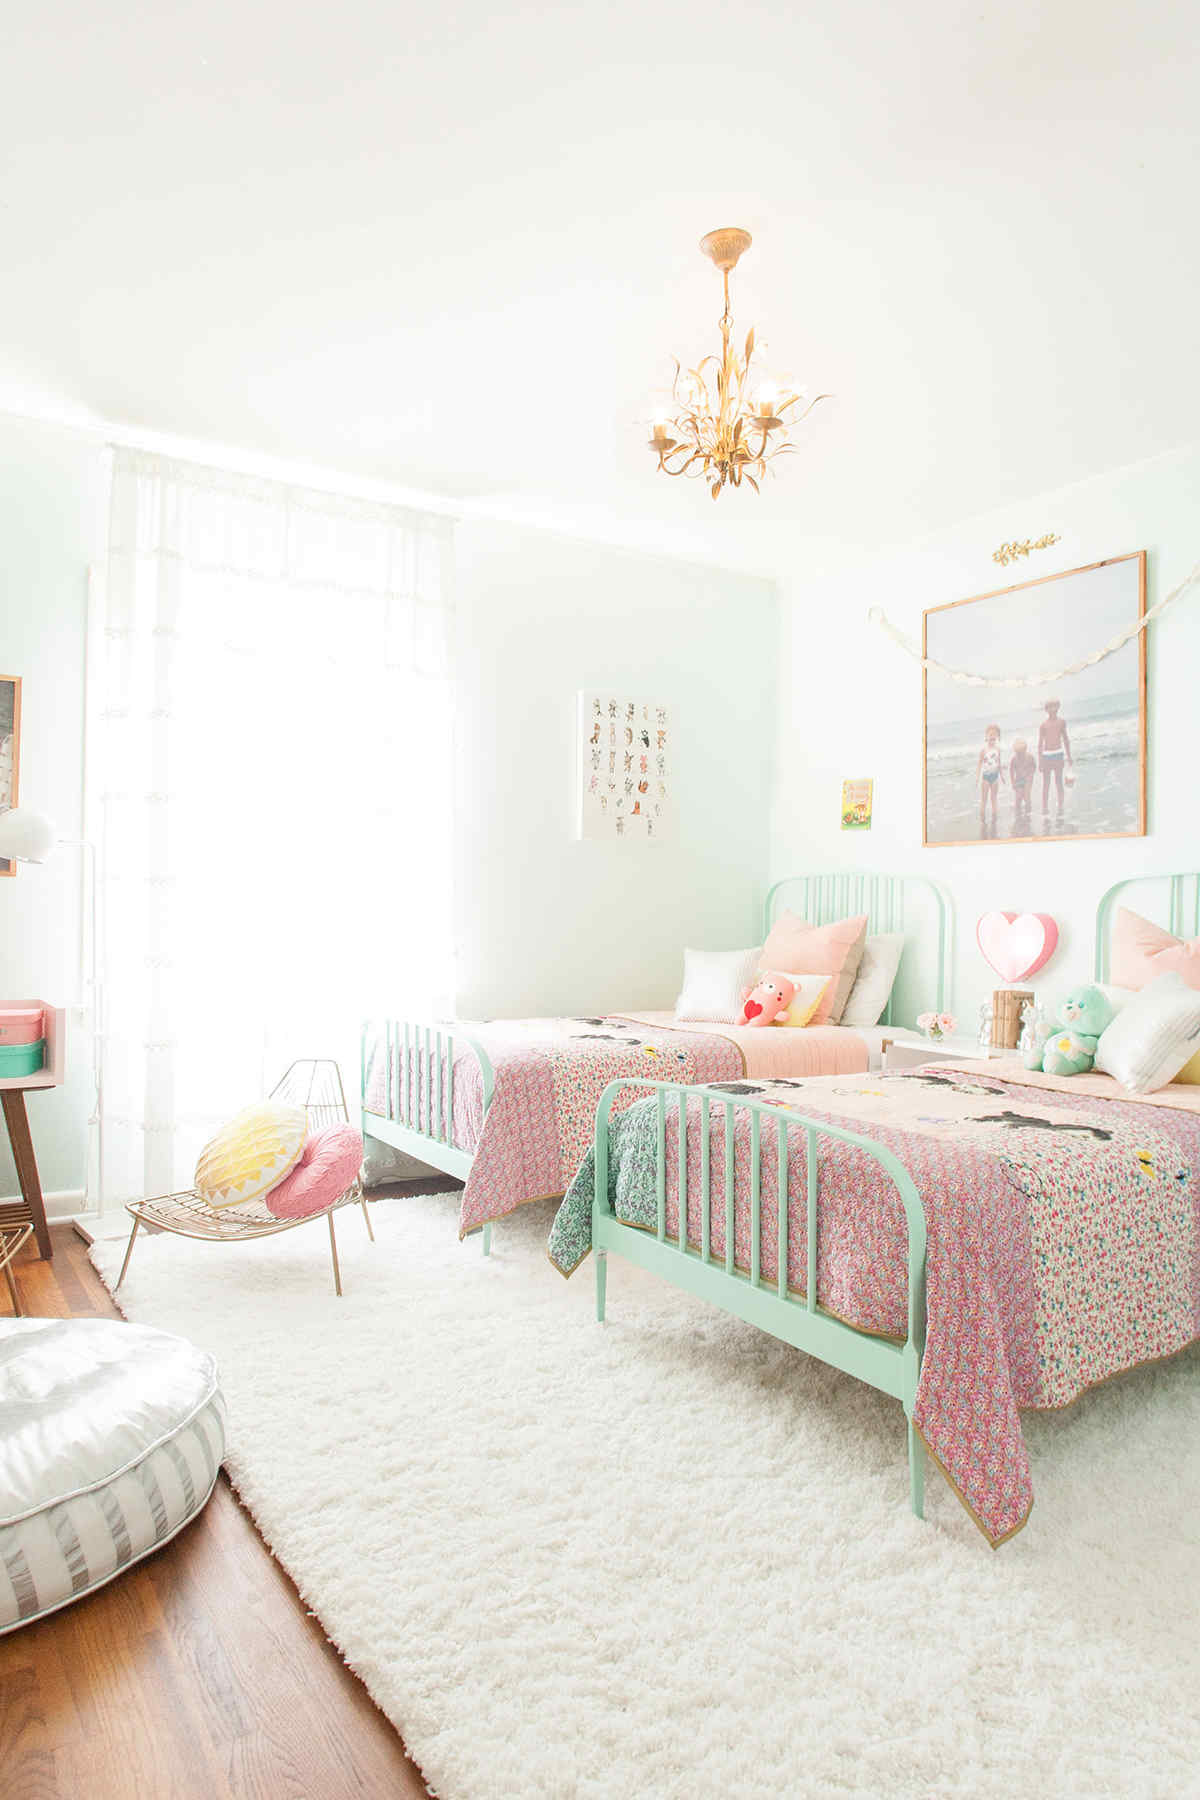 18 Shared Girl Bedroom Decorating Ideas – Make It and Love It